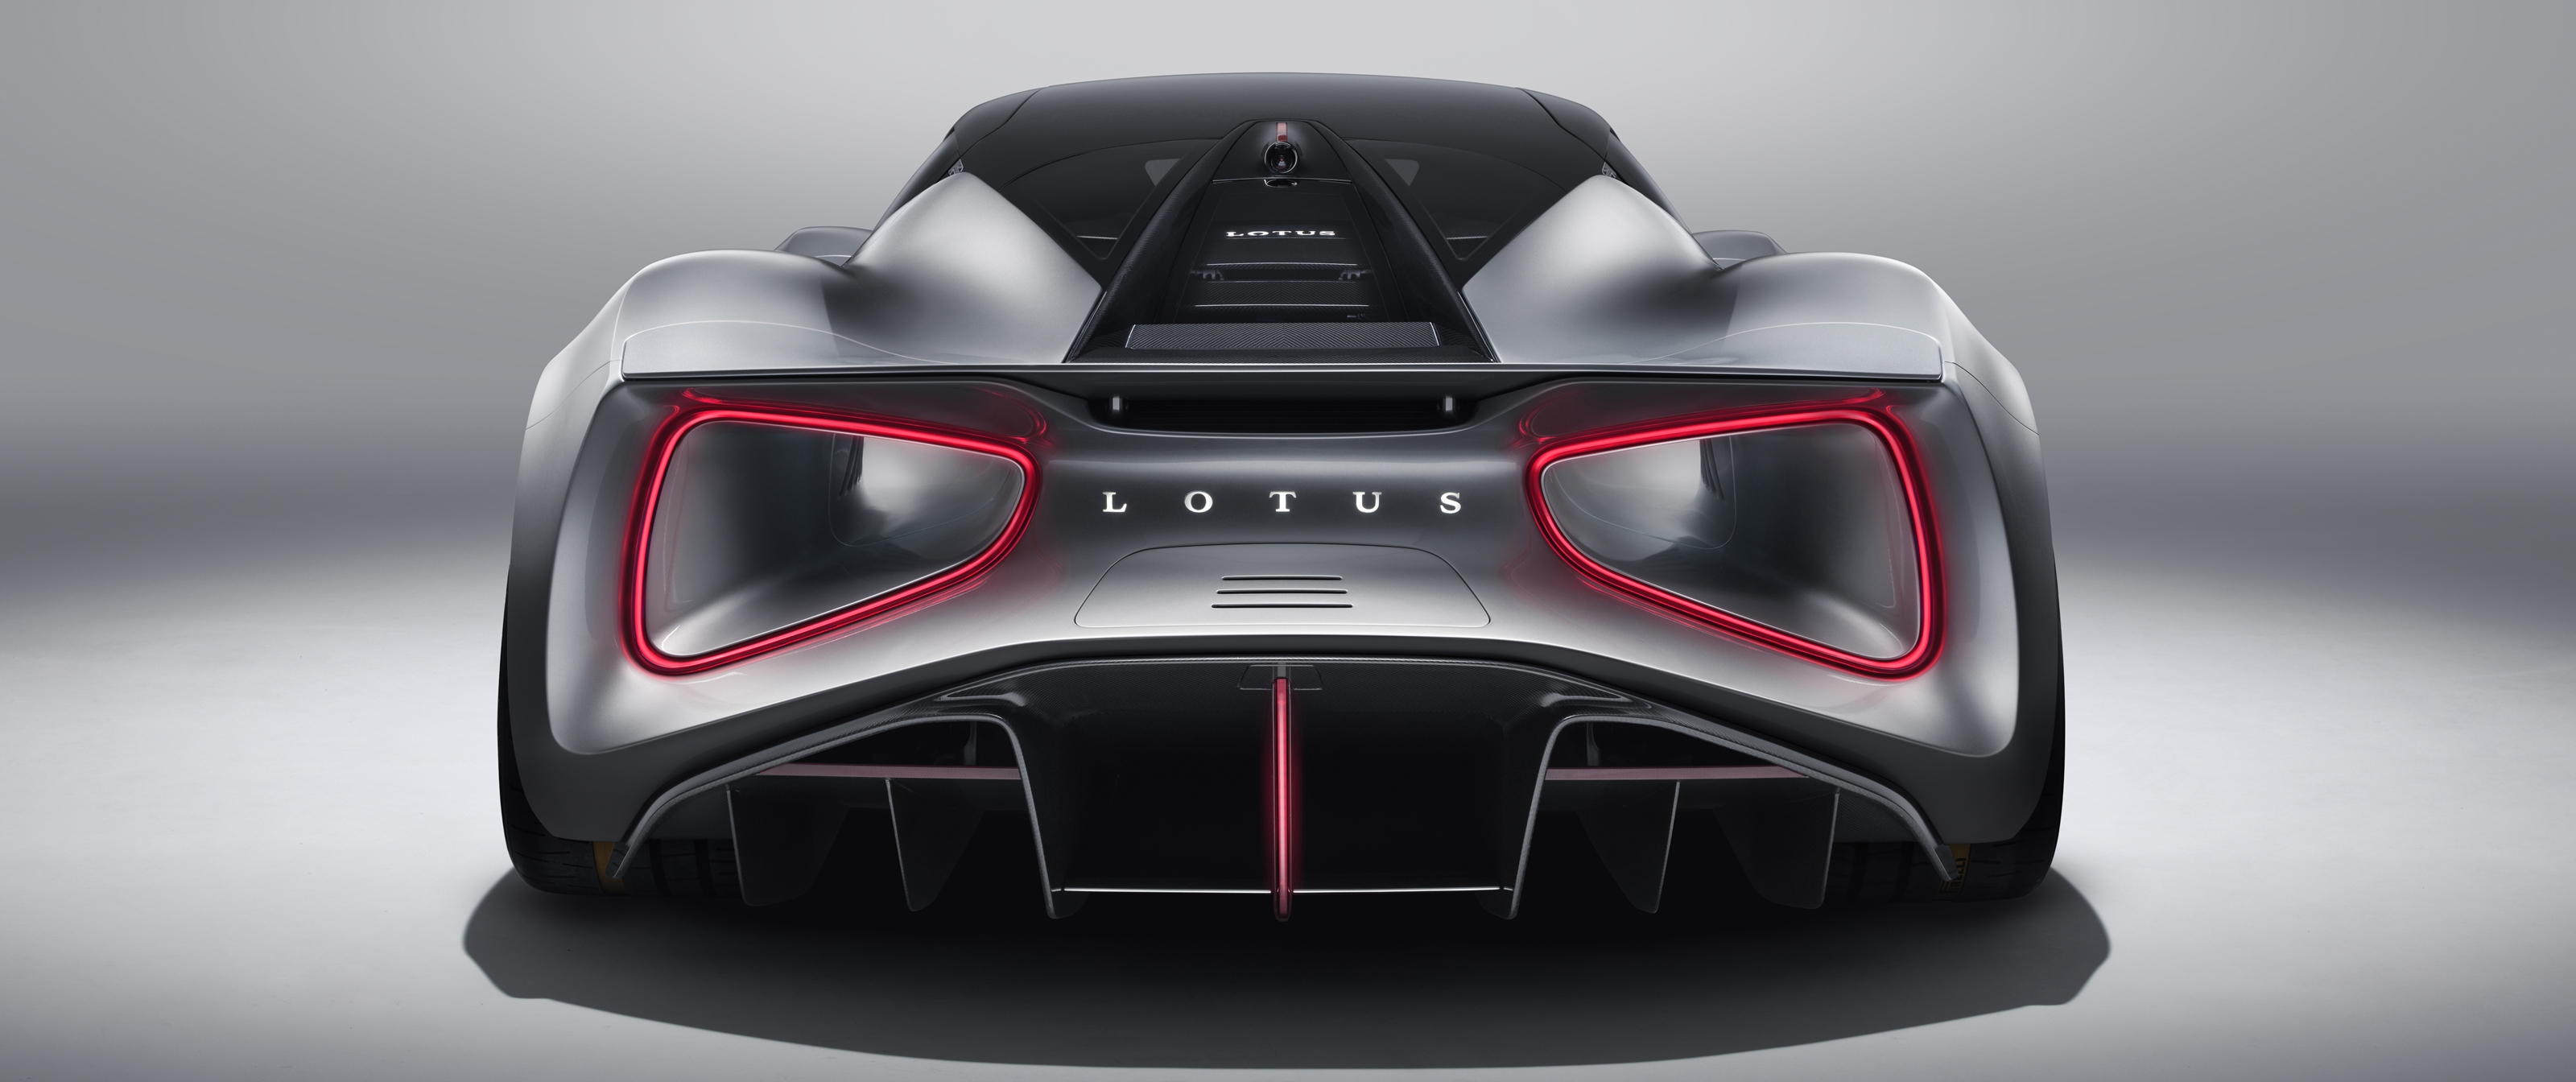 2019 Lotus Evija electric car